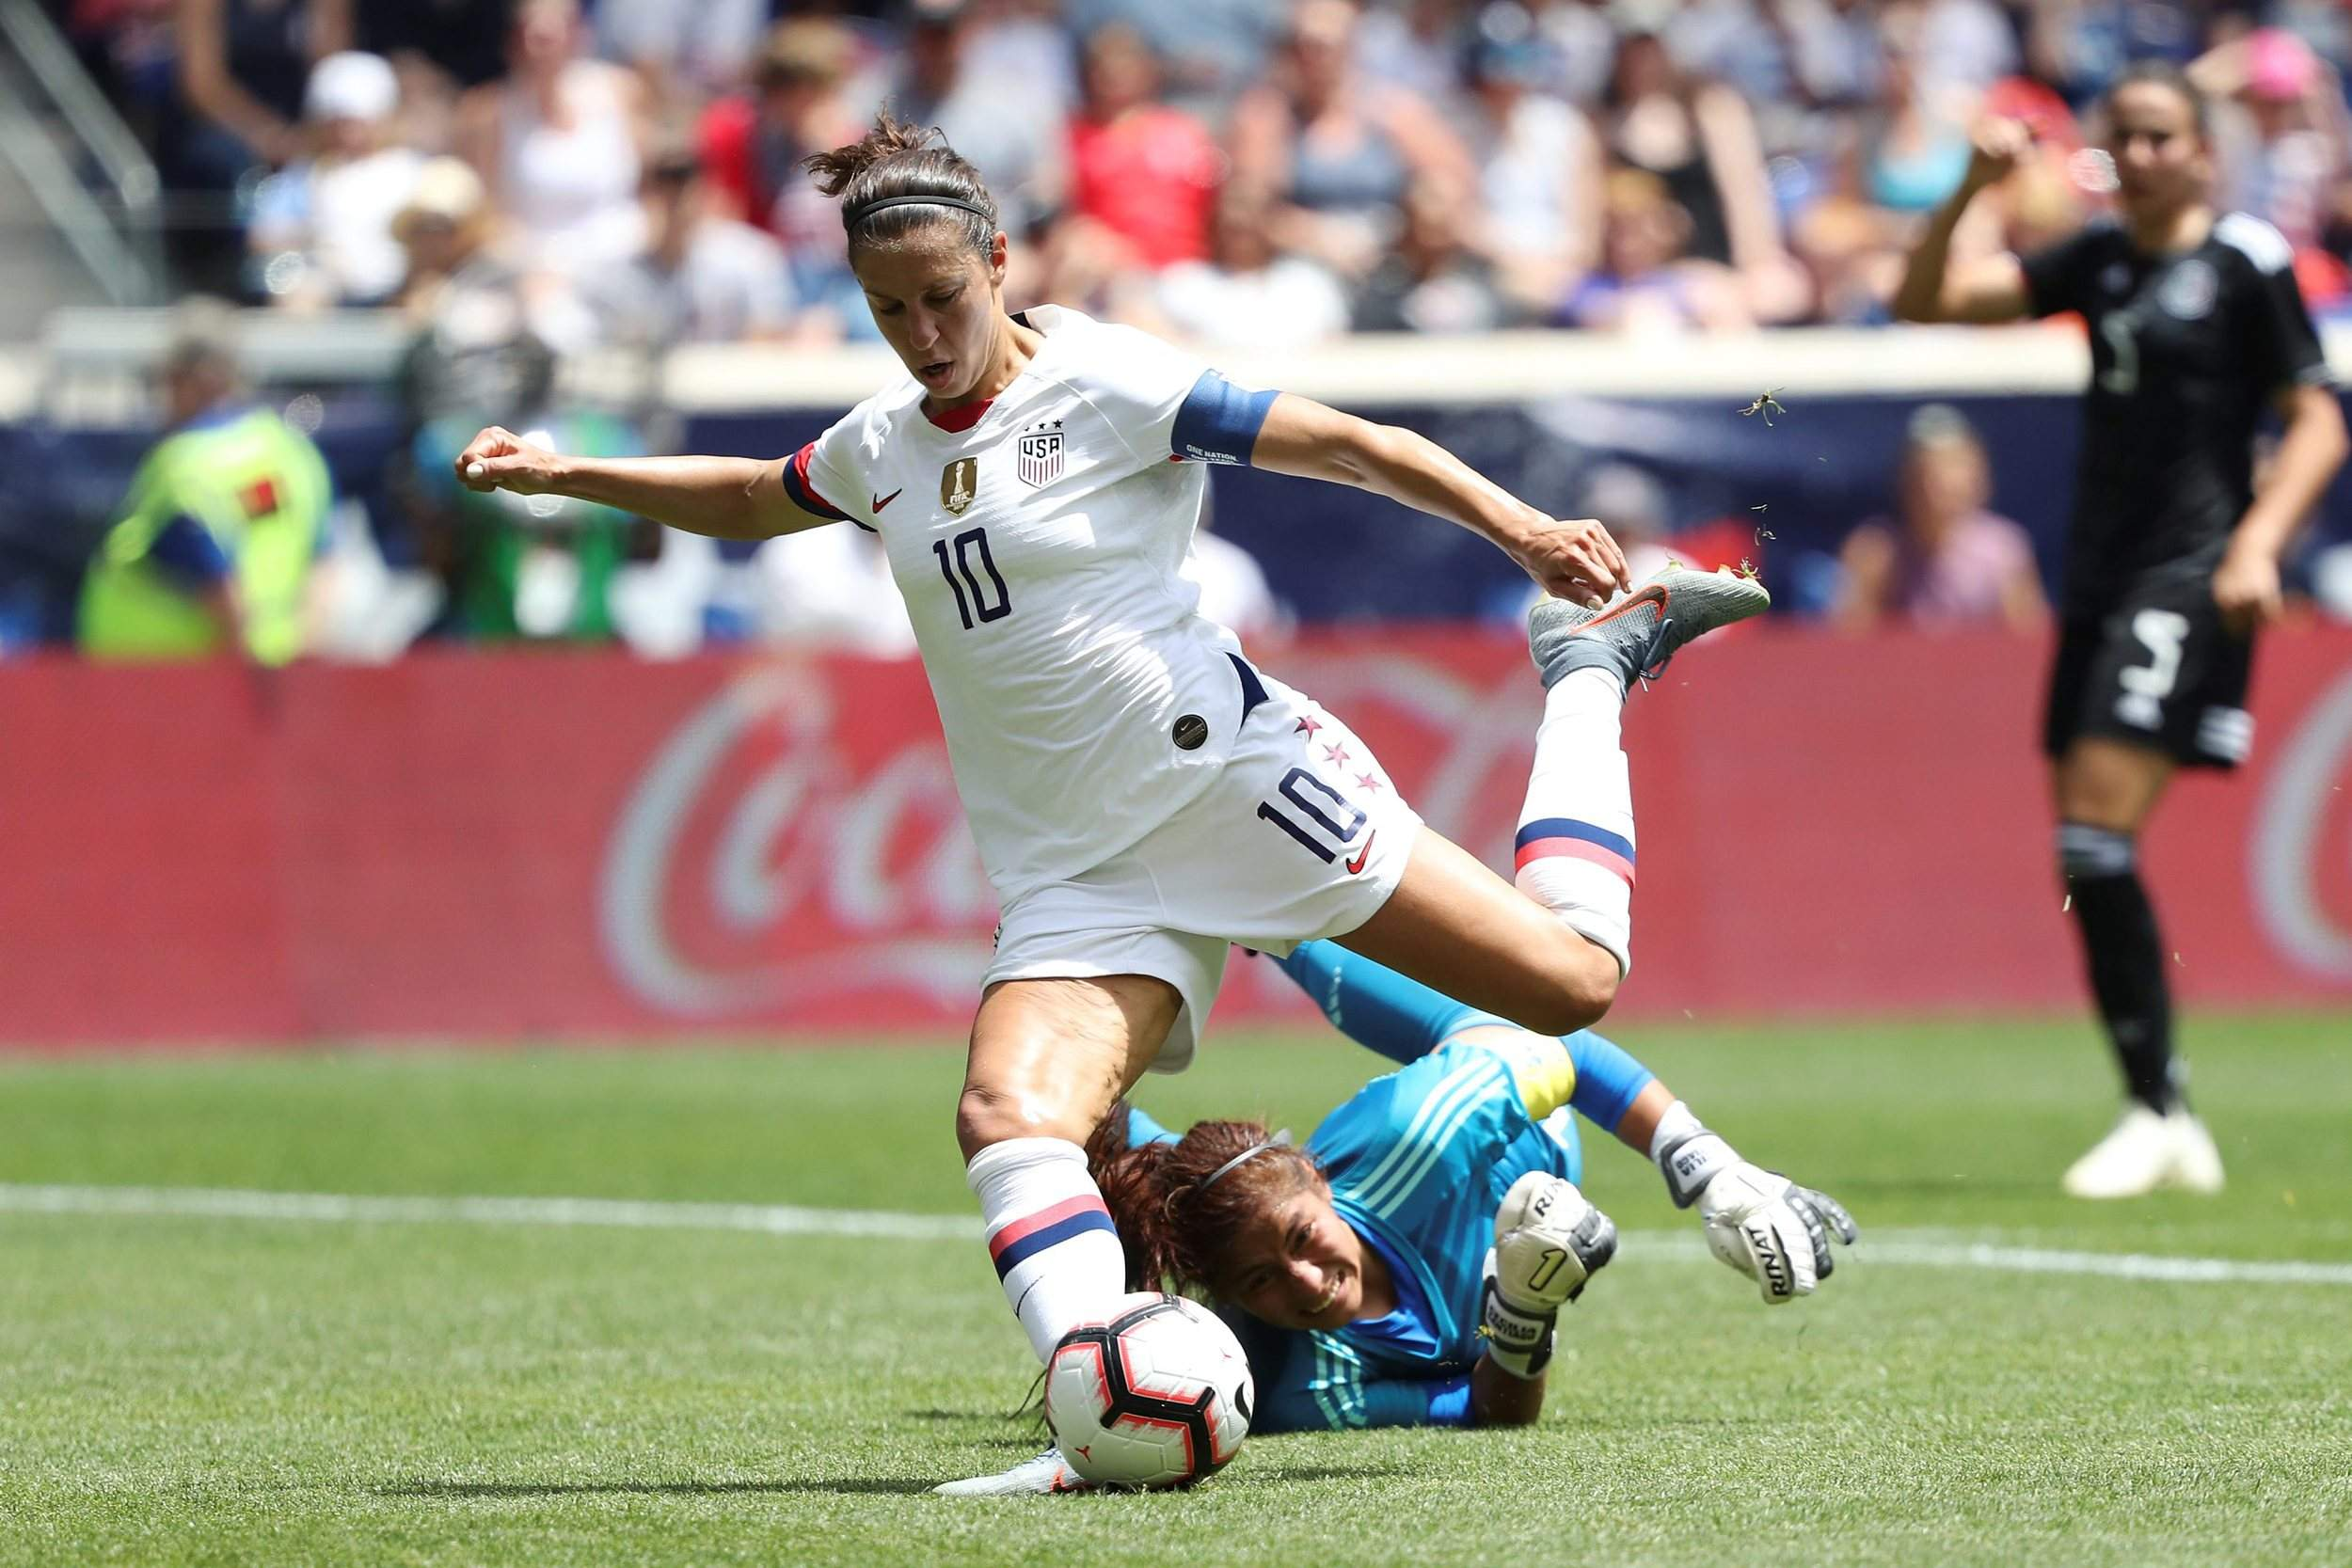 c121f847062 U.S. sends off women s soccer in style against Mexico